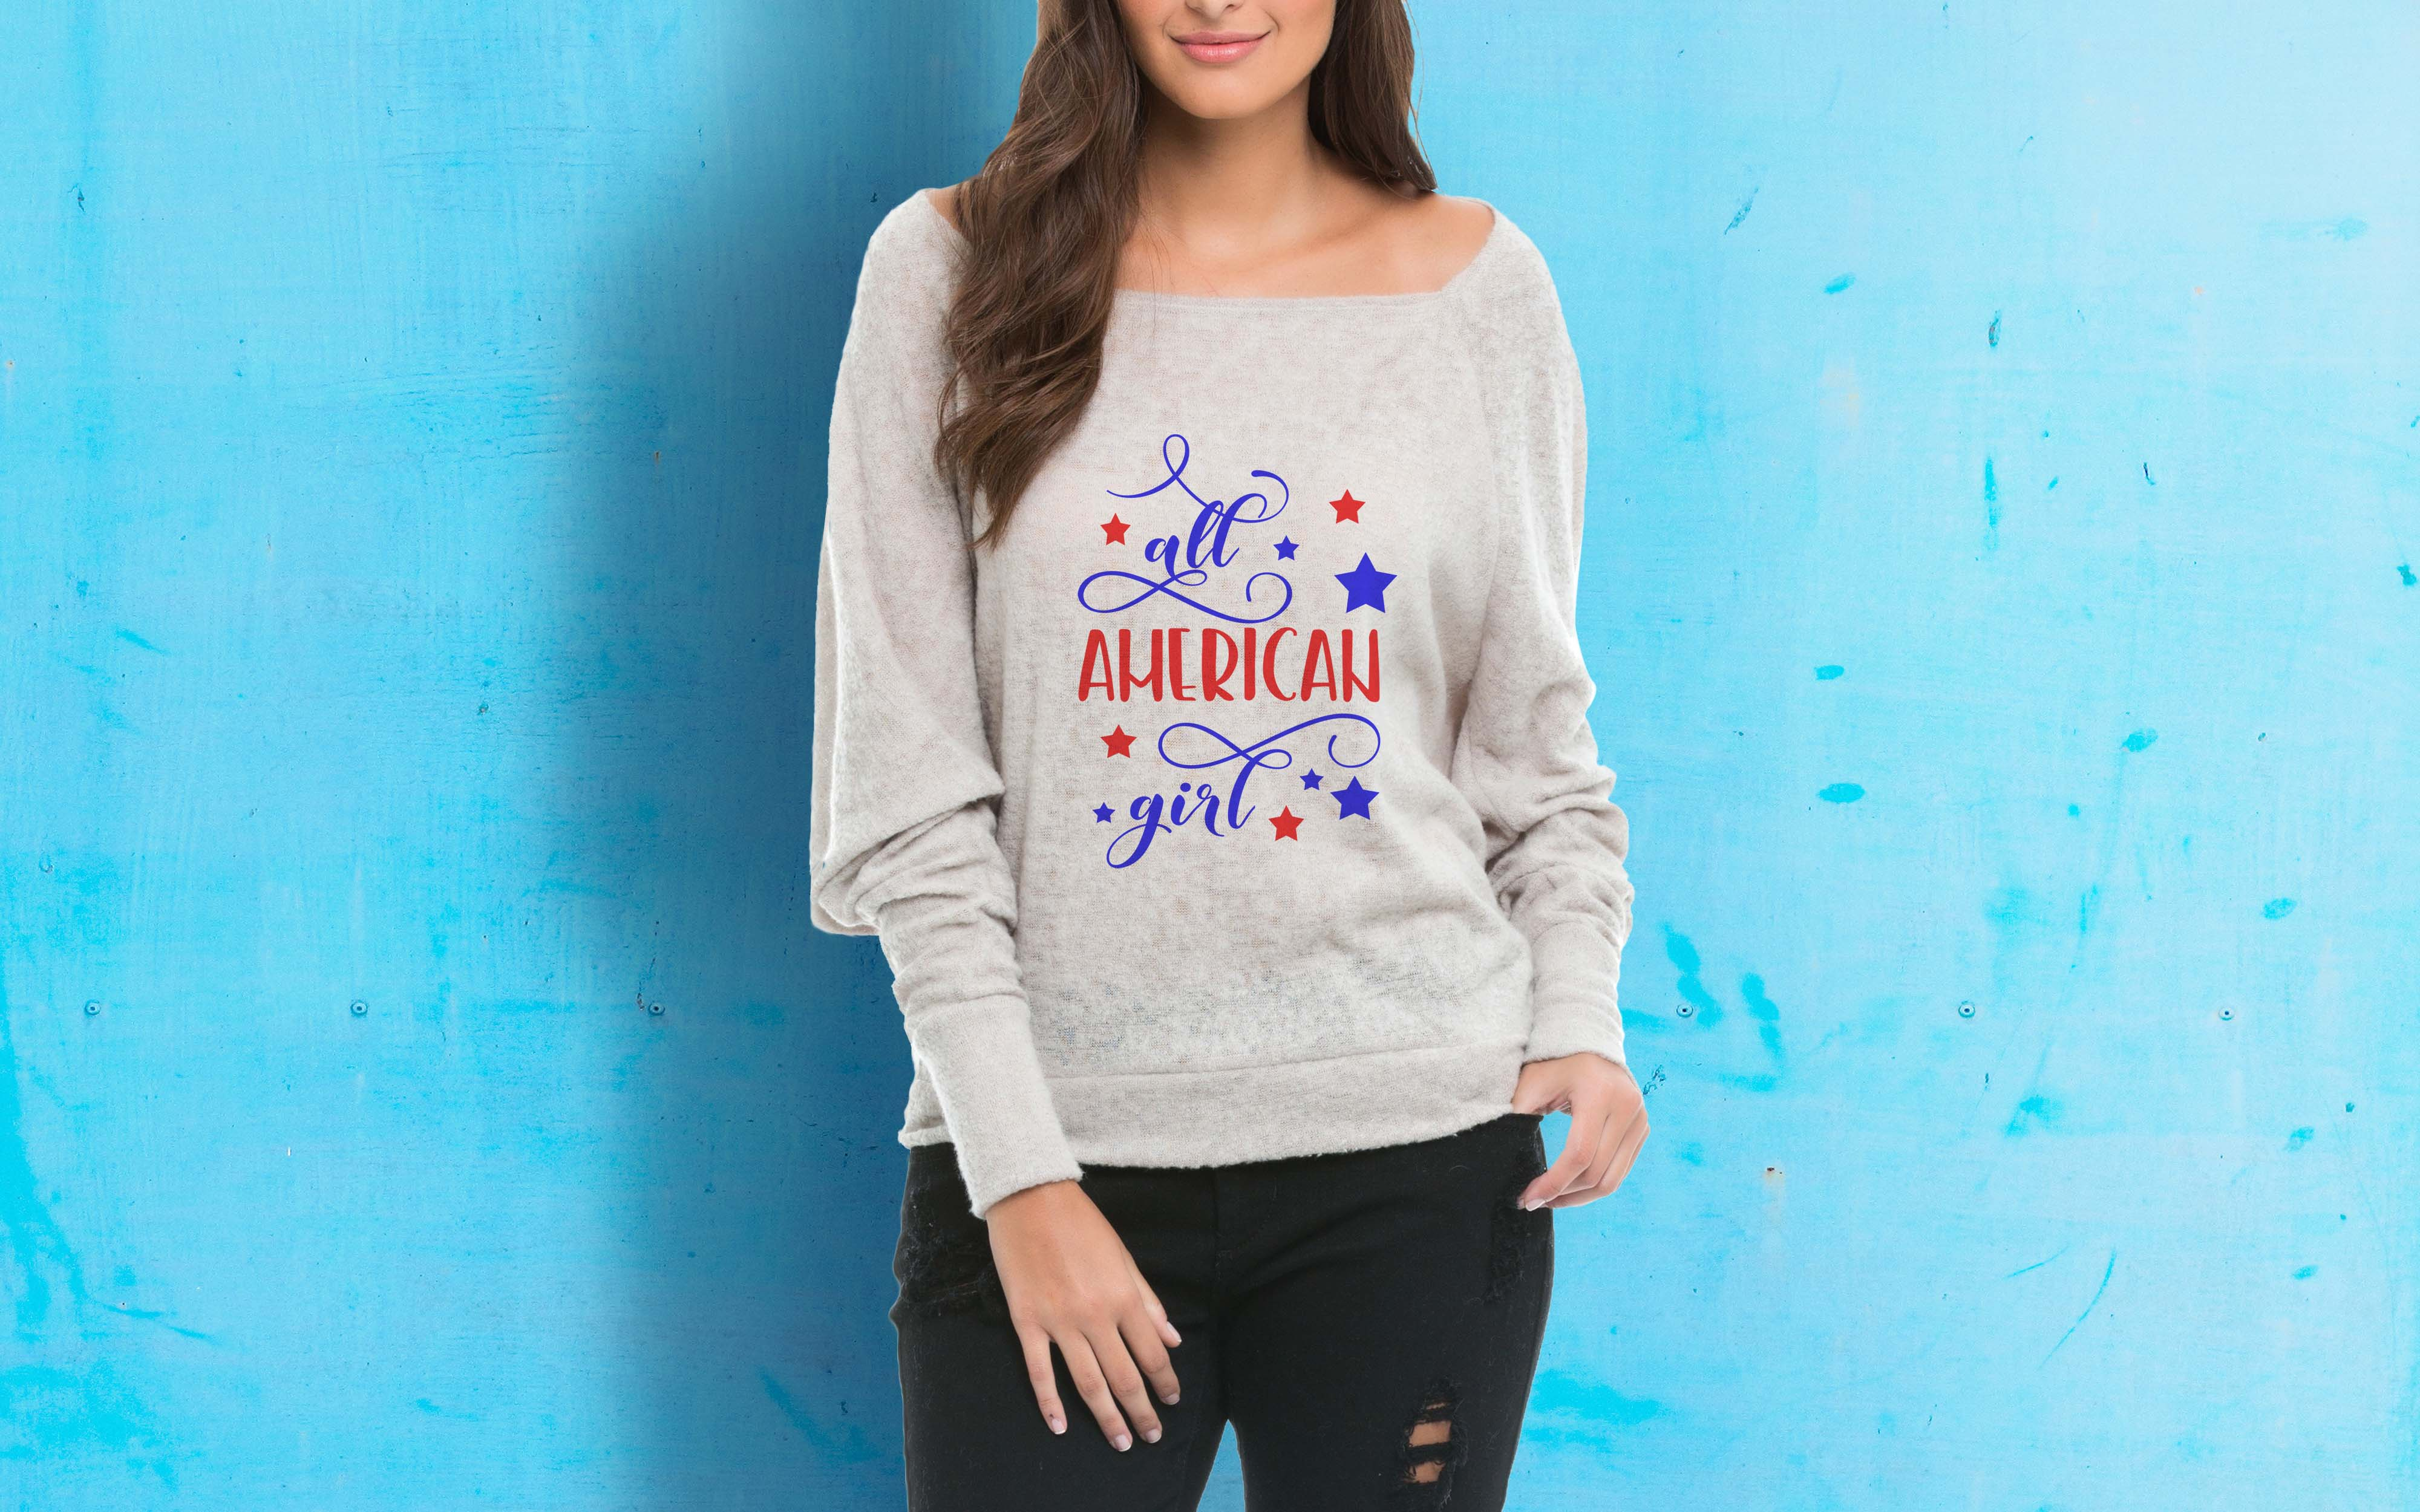 All American girl SVG PNG EPS DXF, Stars svg design example image 2